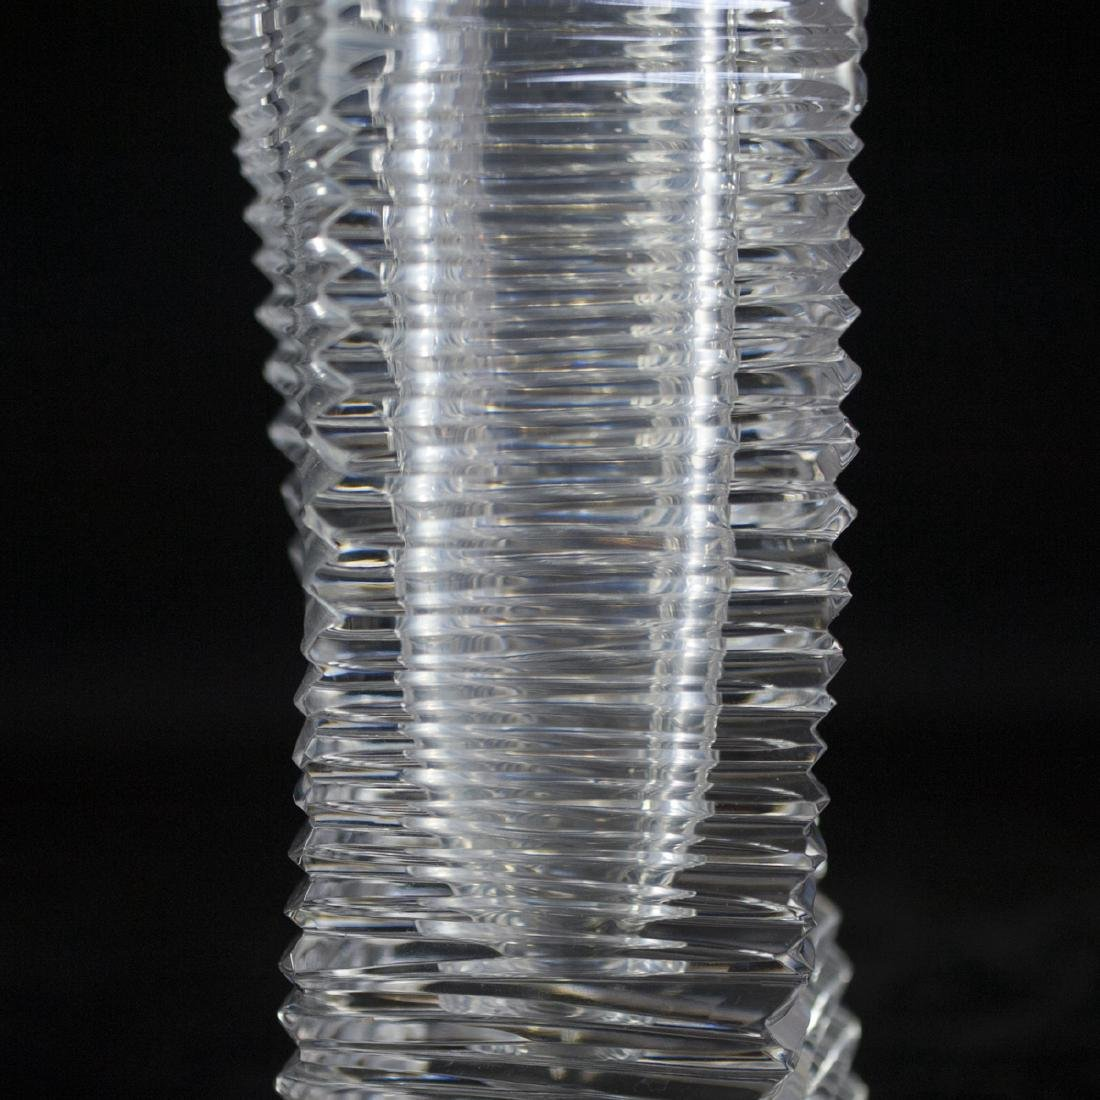 Japanese Crystal Vase - 2